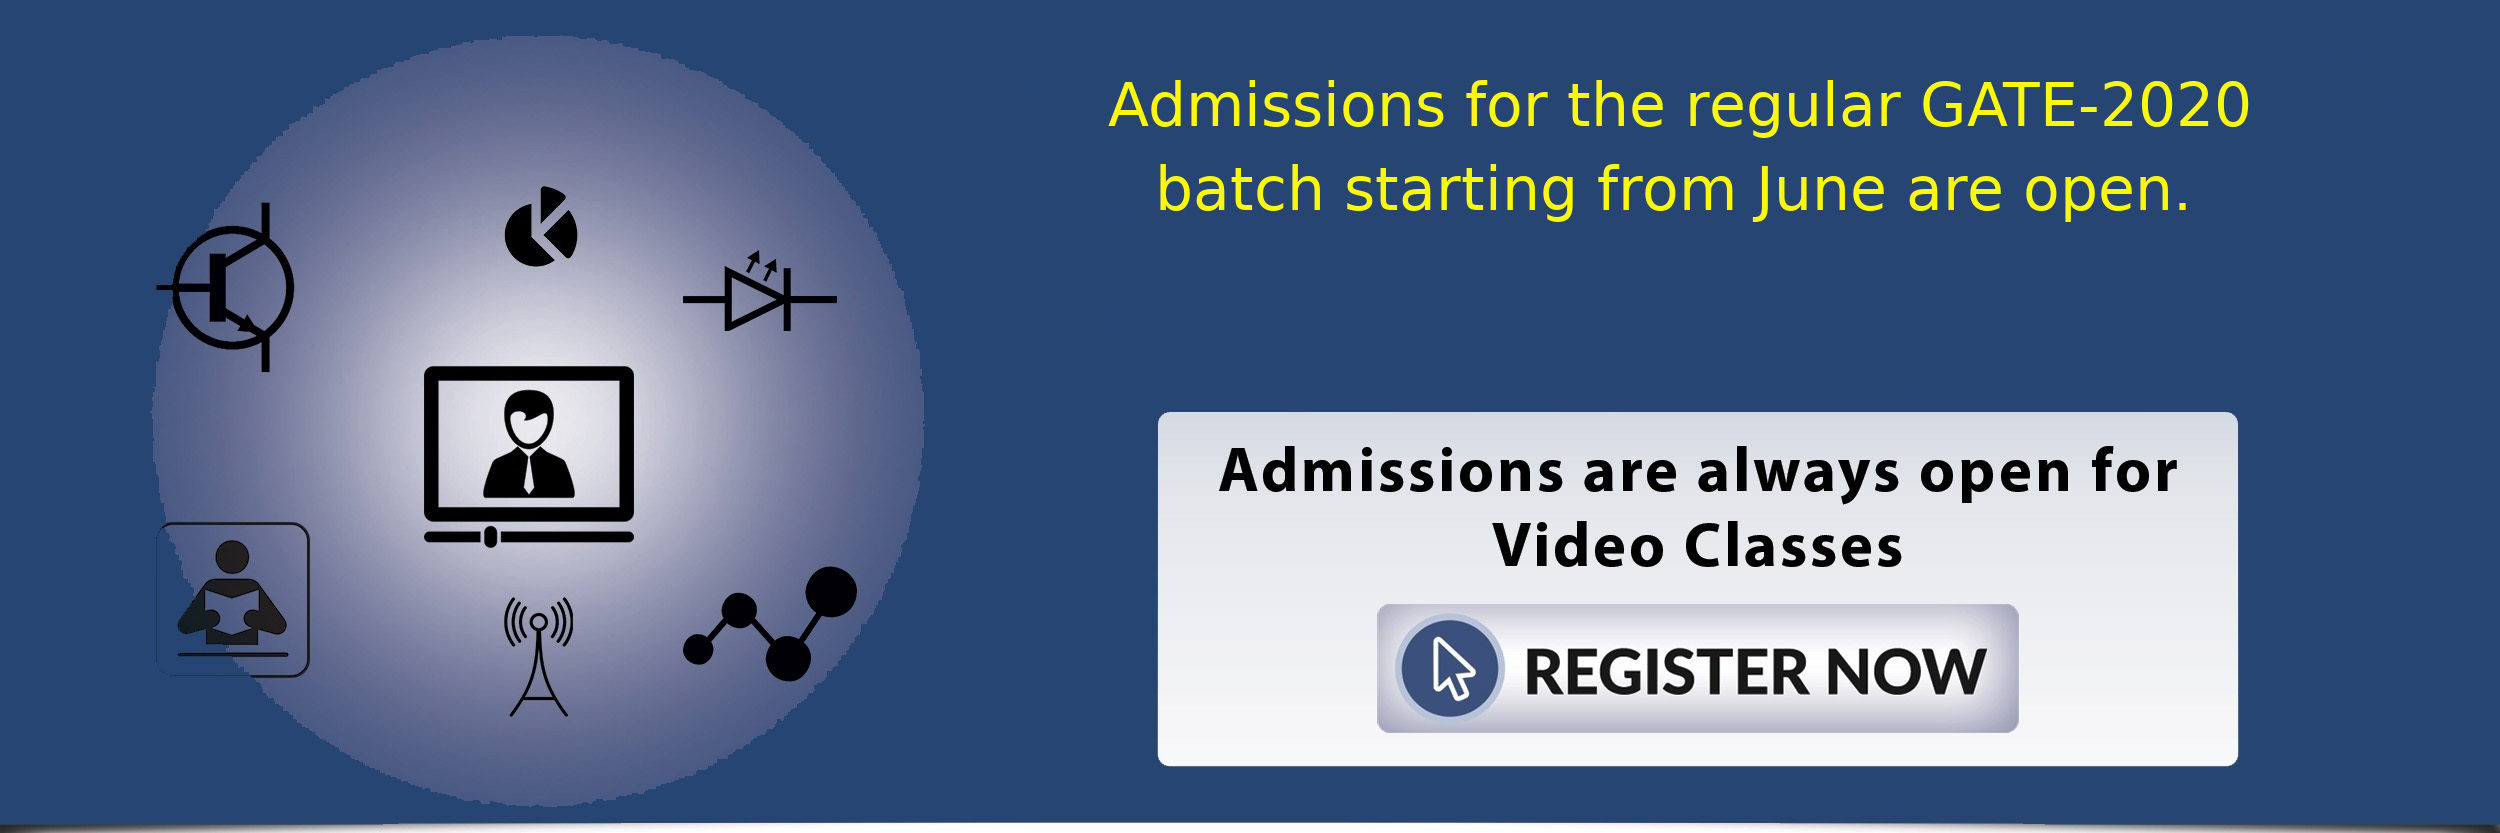 Admissions open for regular batch for GATE-2020